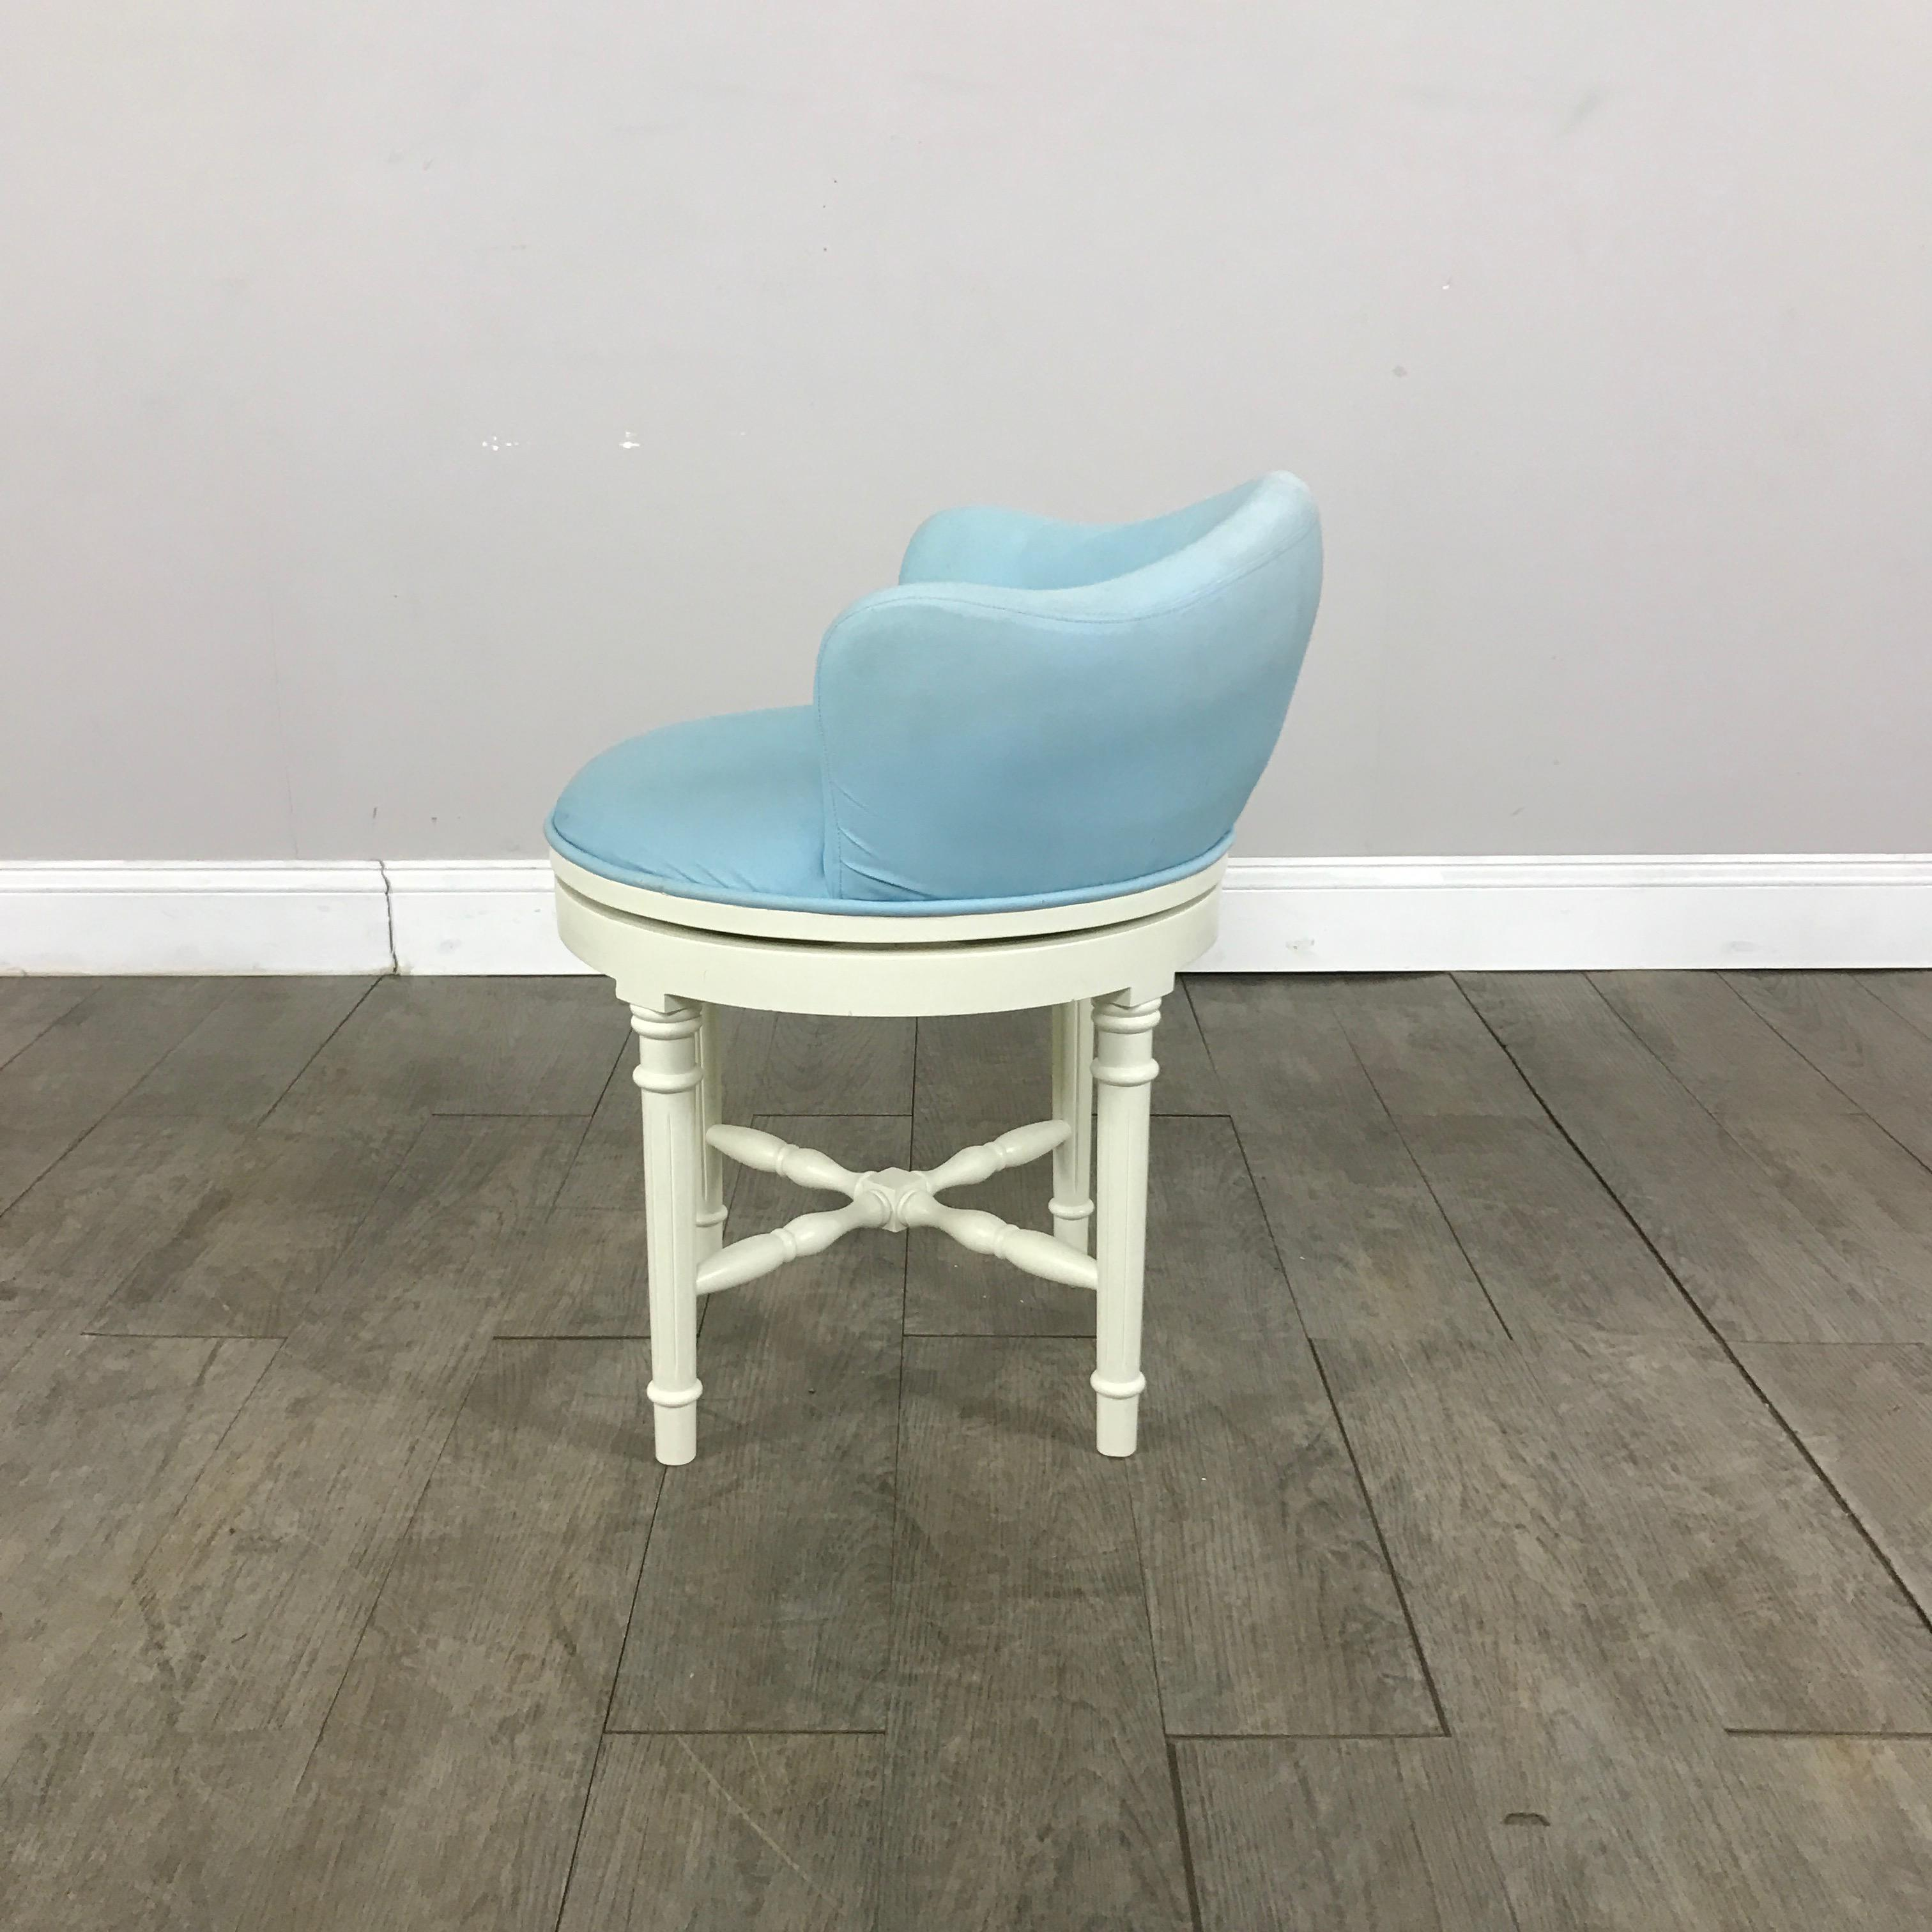 vanity chair pottery barn wedding cover hire rotherham sky blue stool chairish fabric for sale image 7 of 9